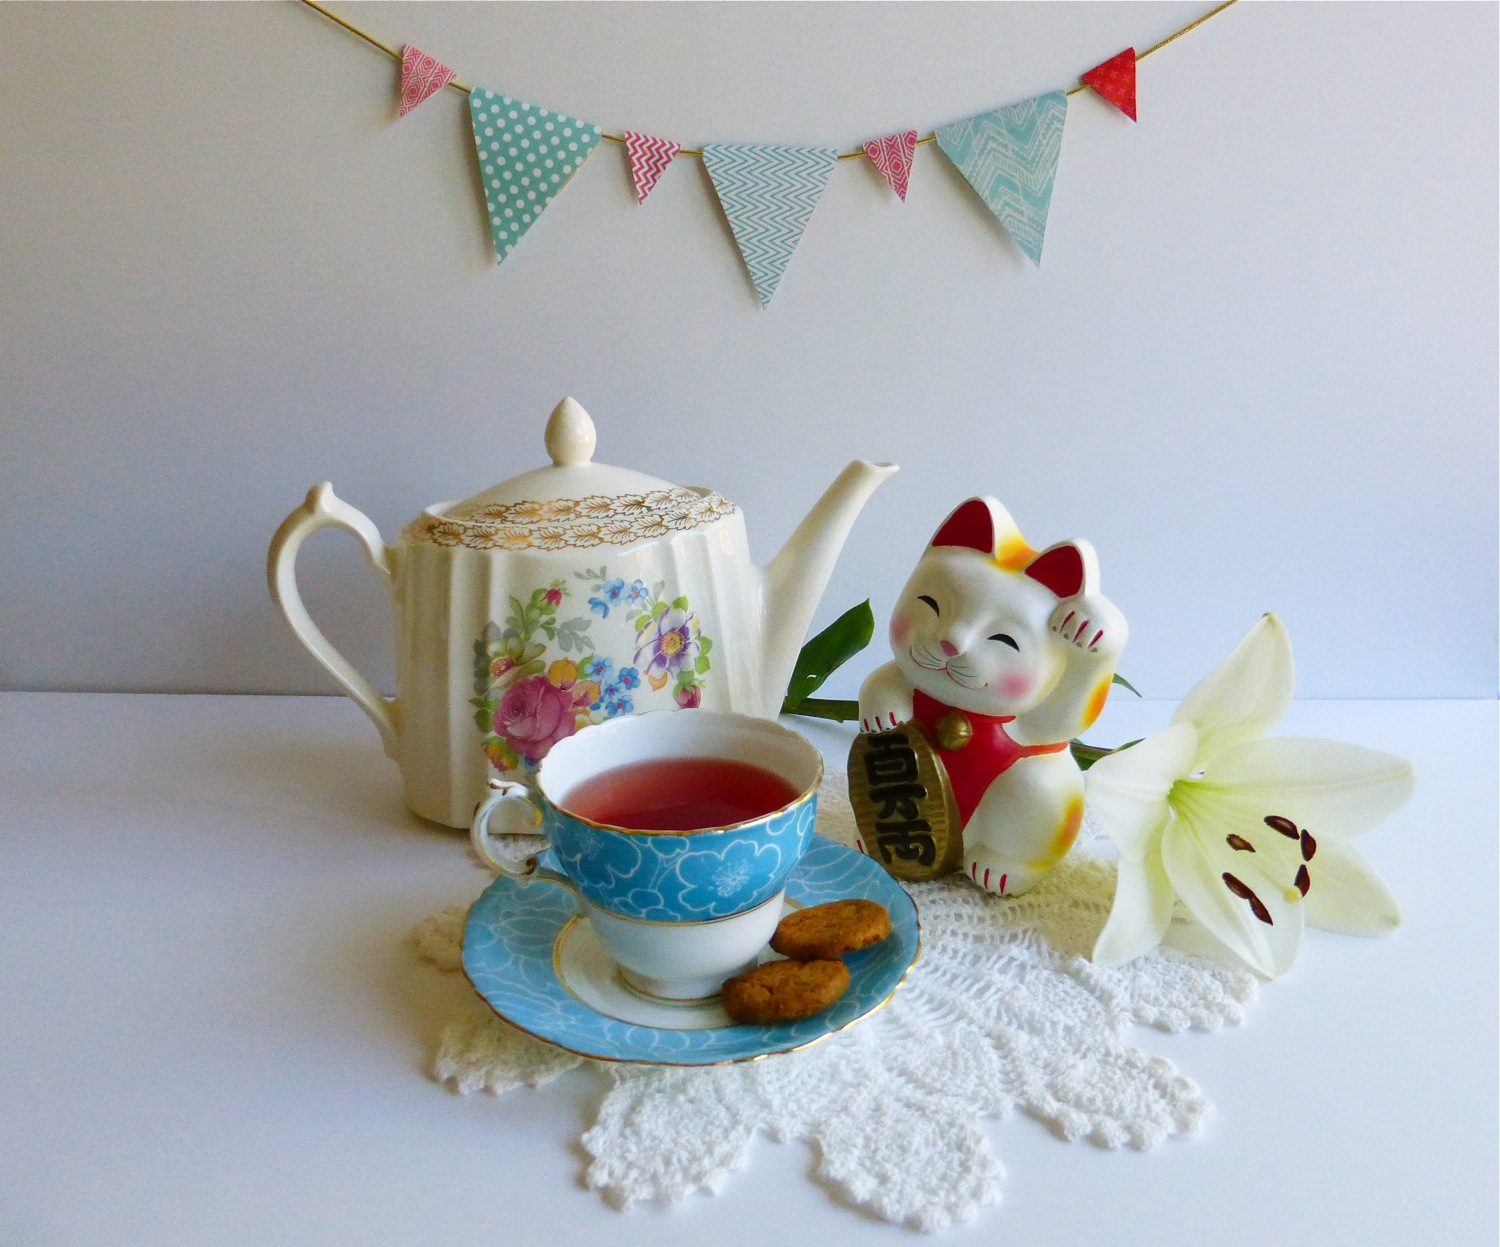 Vintage Tea Treasures, La Marr teapot, Cauldon teacup and saucer set, Maneki-neko, good luck cat, Flow Book For Paper Lovers